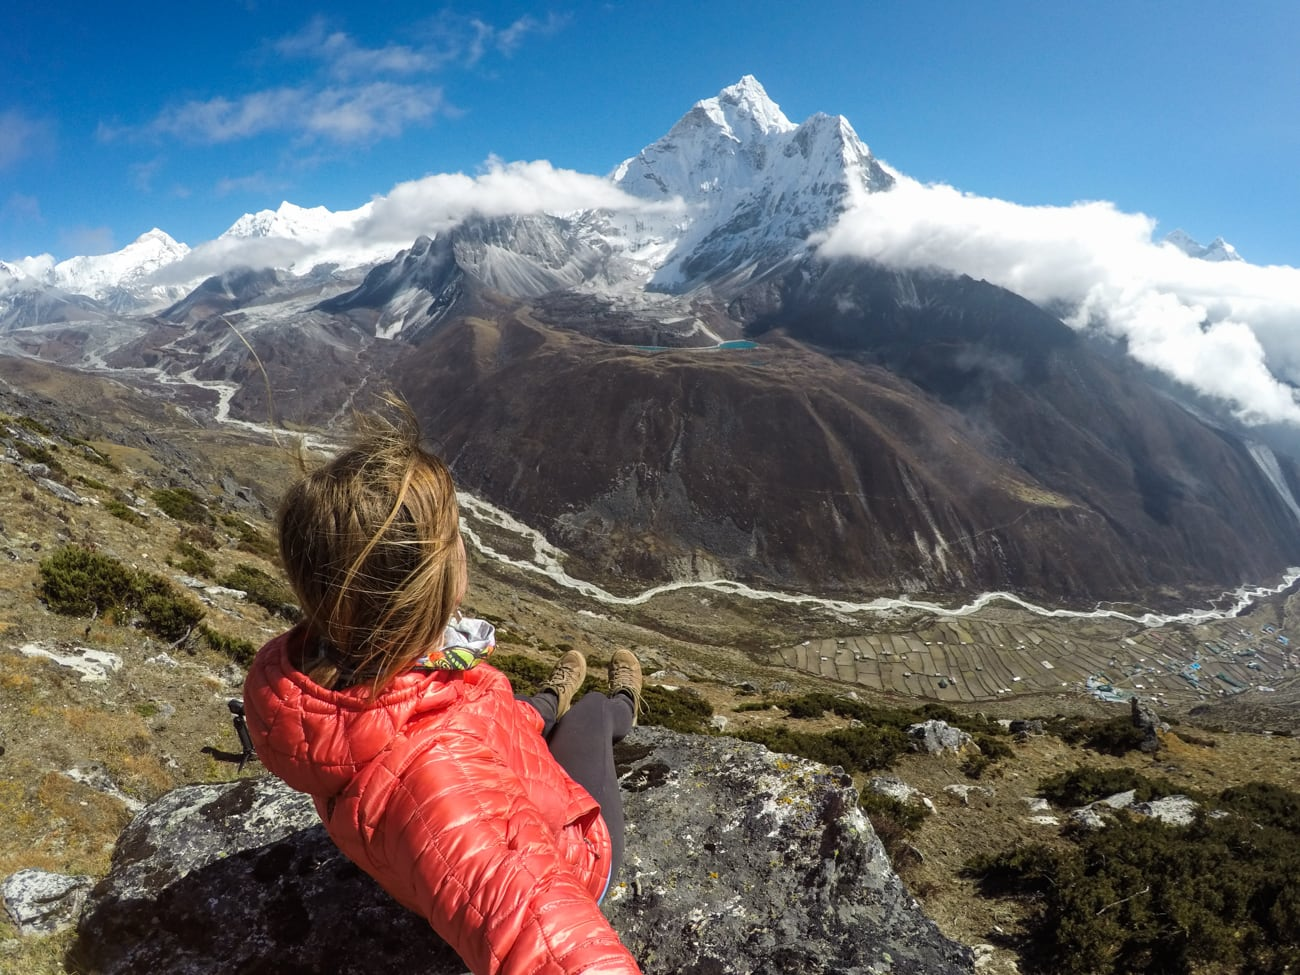 Everest basecamp trek photos - Ama Dablam views above Dingbouche